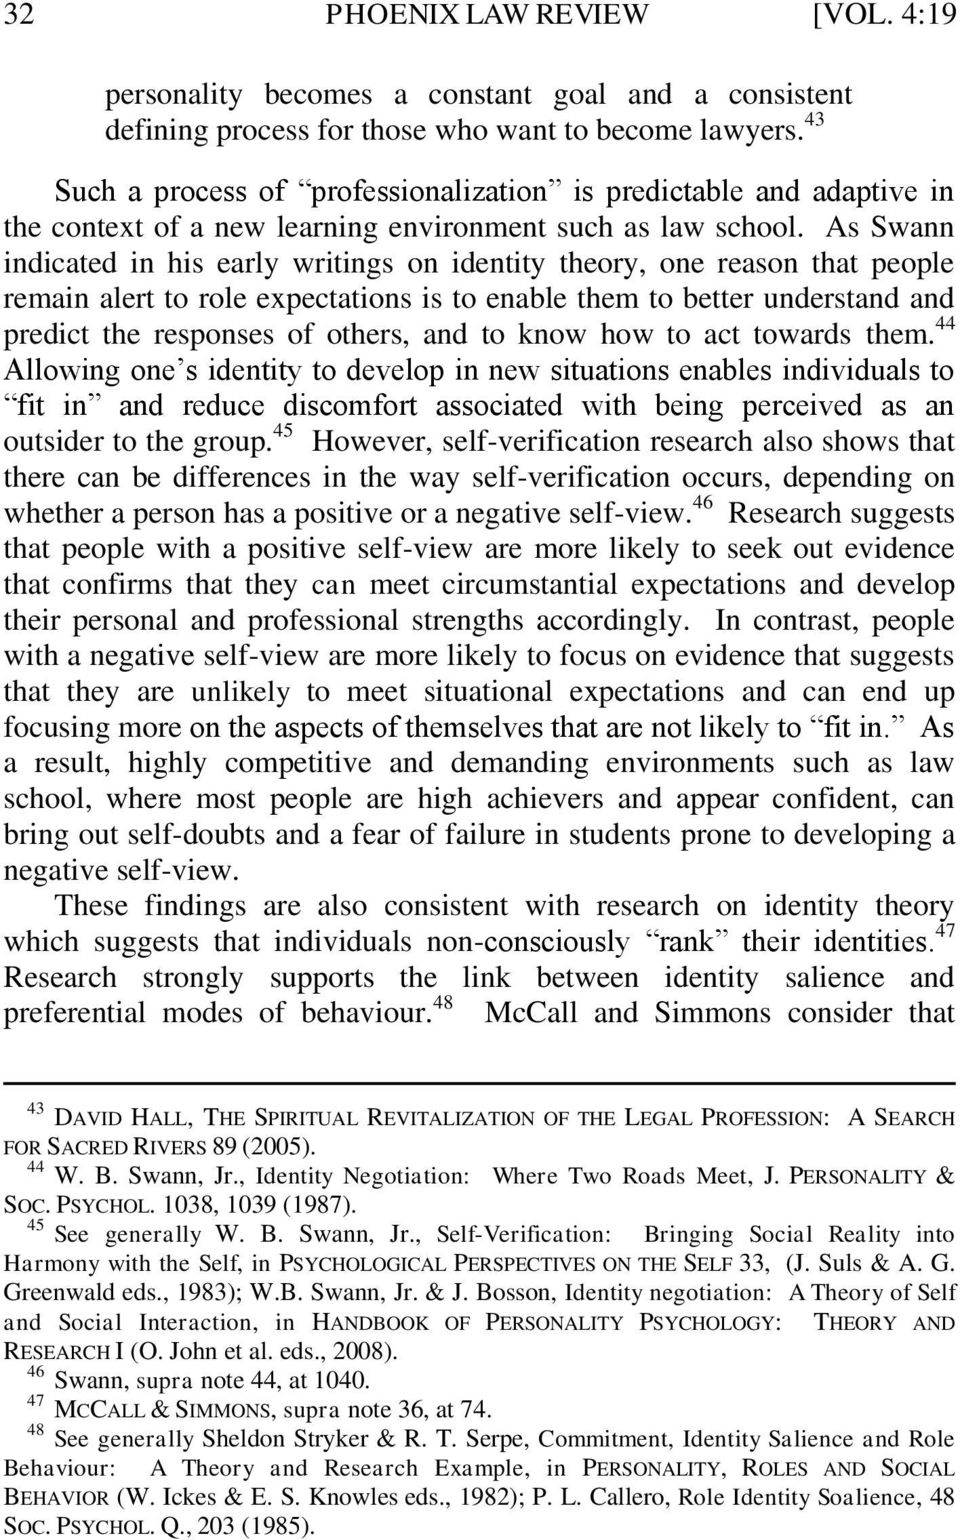 As Swann indicated in his early writings on identity theory, one reason that people remain alert to role expectations is to enable them to better understand and predict the responses of others, and